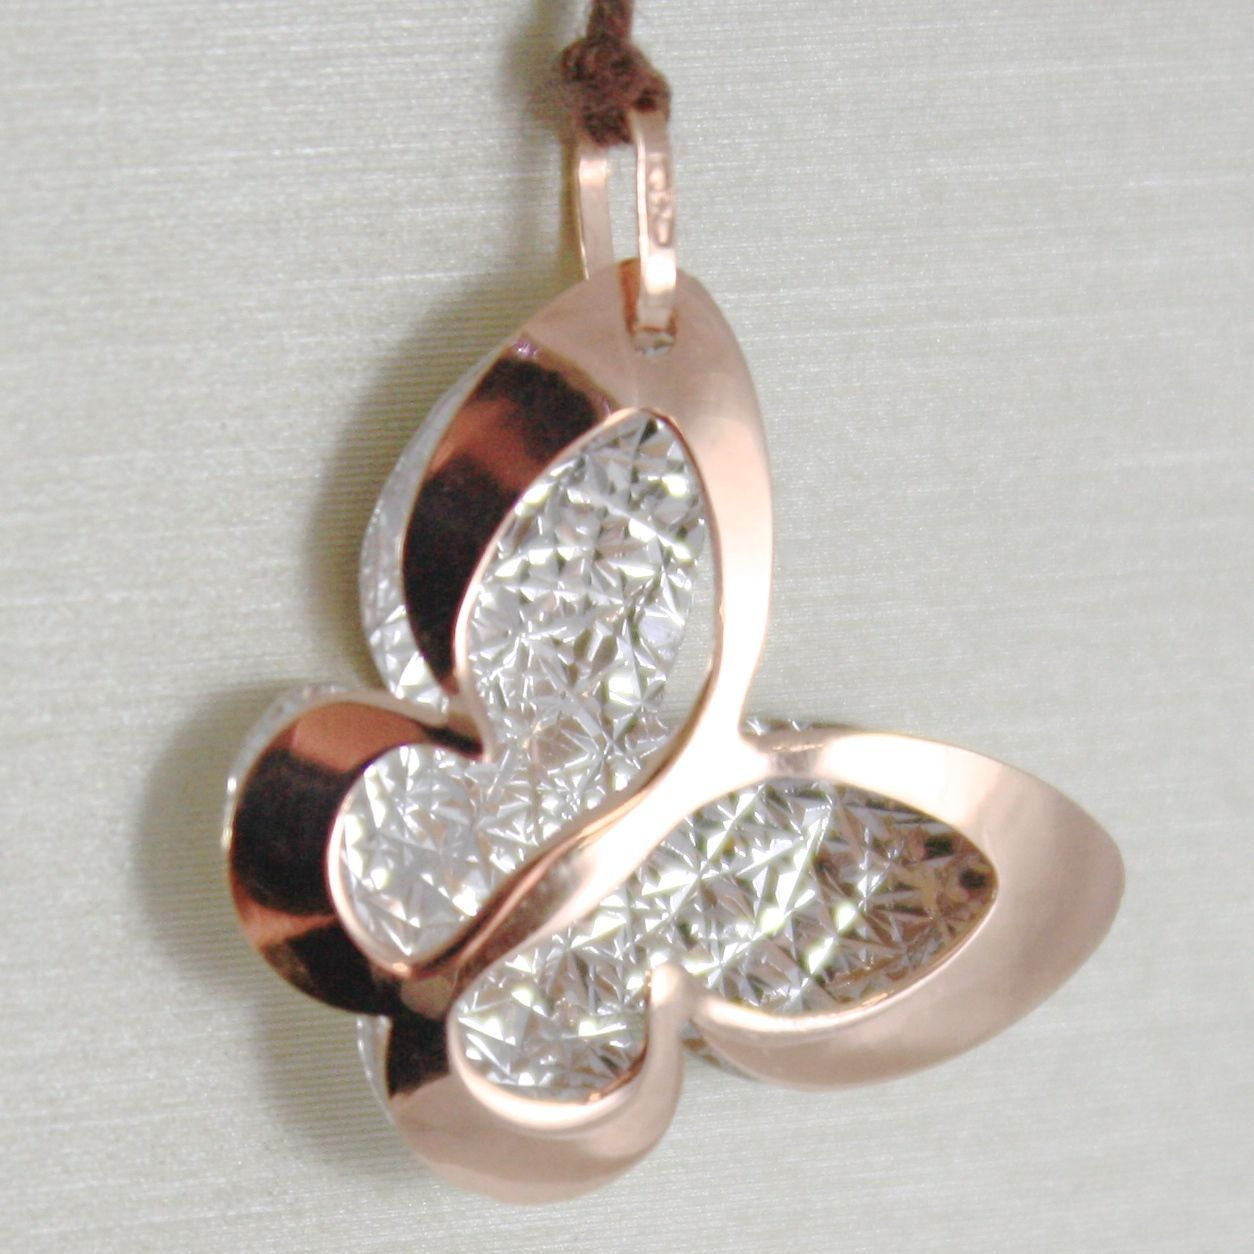 WHITE GOLD PENDANT PINK 750 18K, BUTTERFLY, DOUBLE LAYER 2 CM, MADE IN ITALY